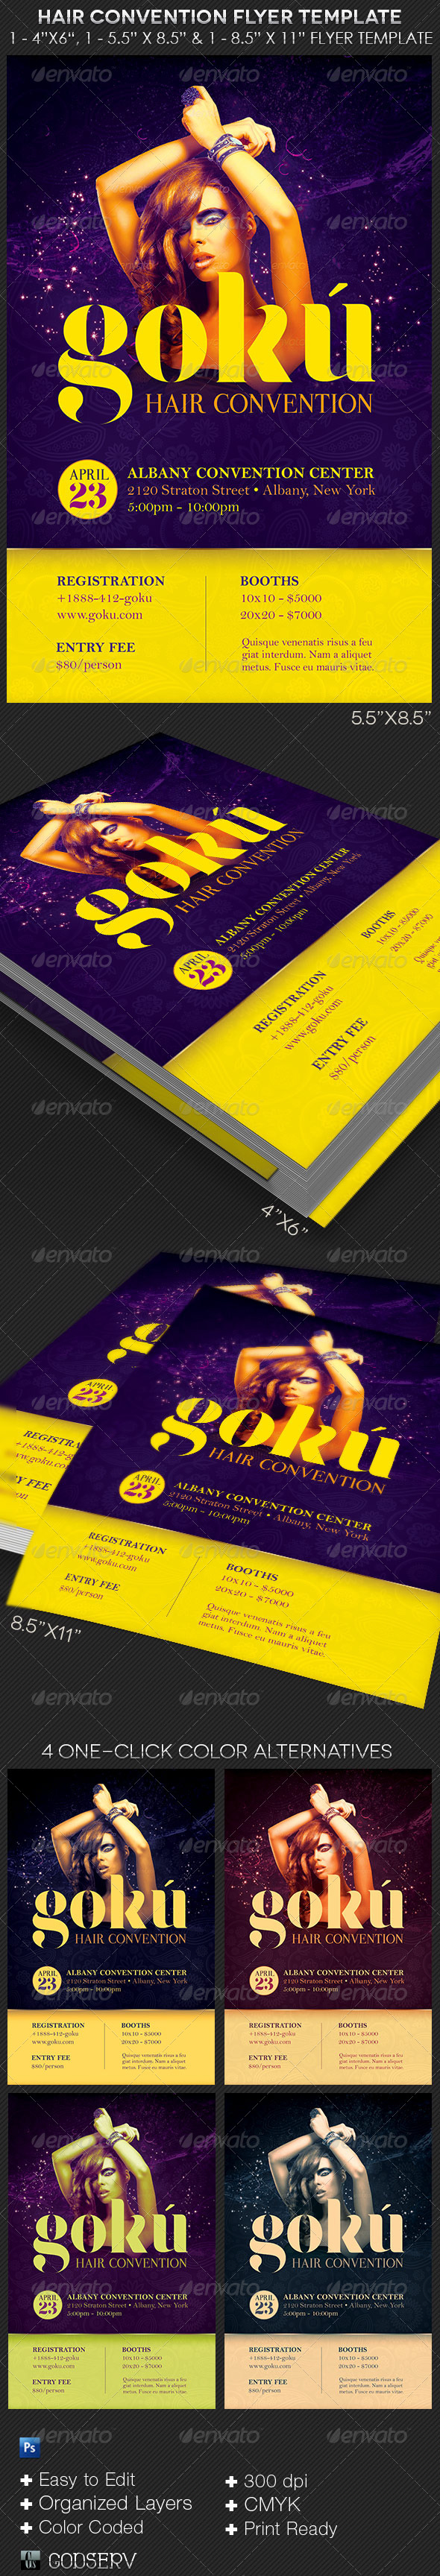 Hair Convention Flyer Photoshop Template - Events Flyers